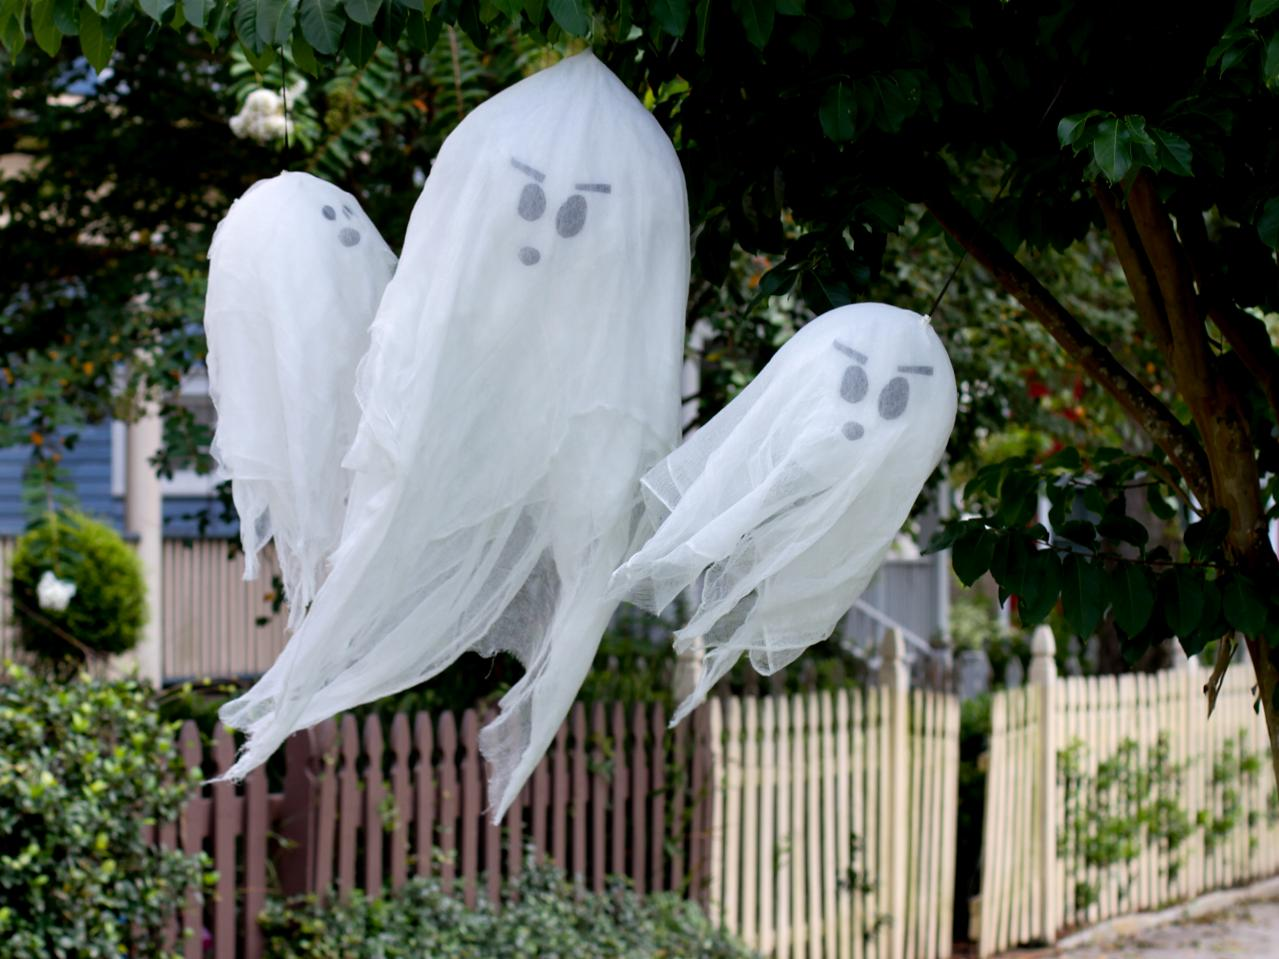 Homemade halloween decorations outside - How To Make Hanging Halloween Ghosts